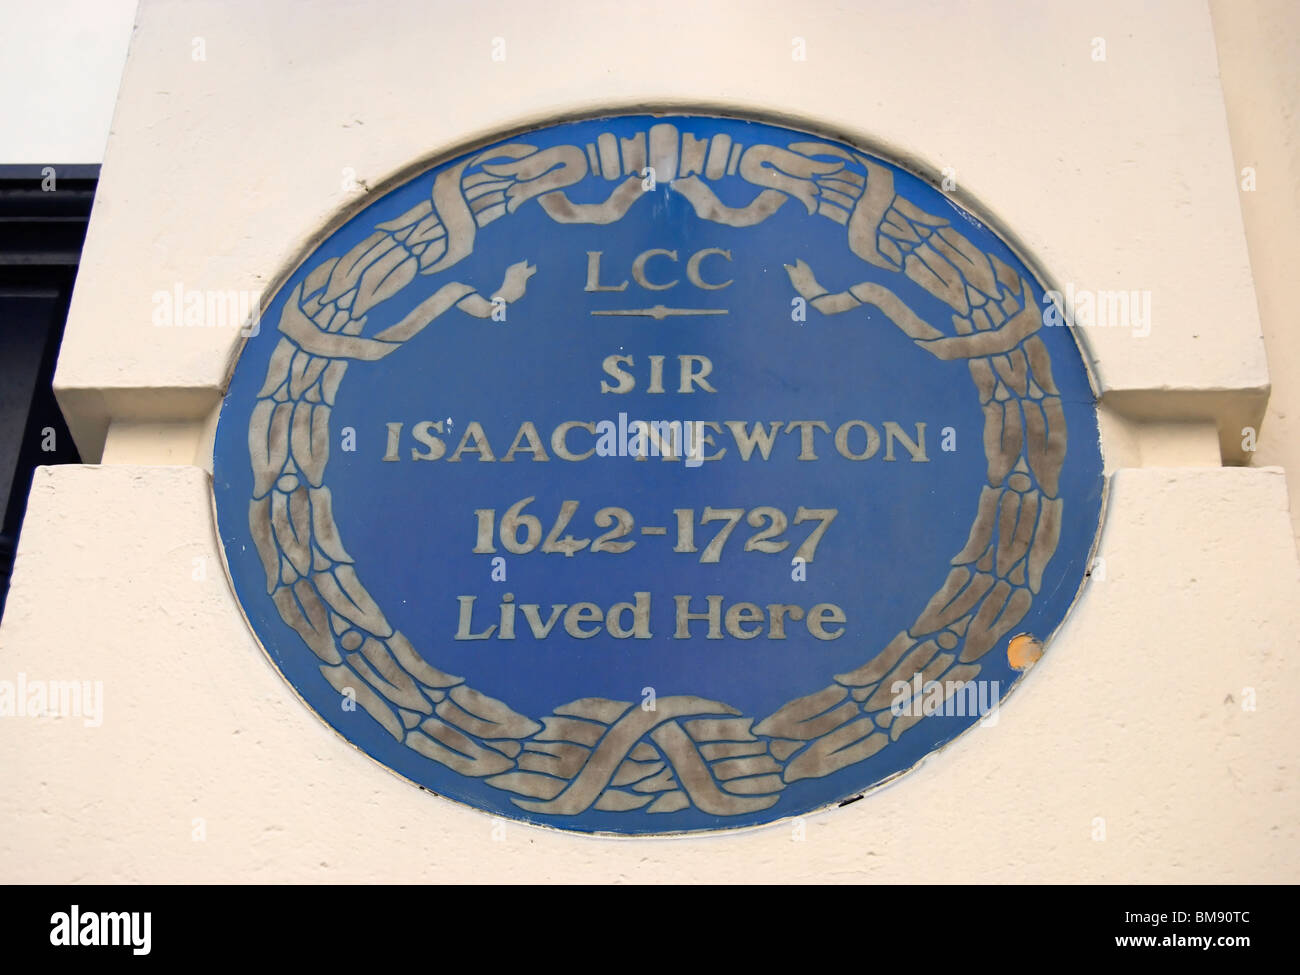 london county council blue plaque marking a home of sir isaac newton, in jermyn street, london, england - Stock Image